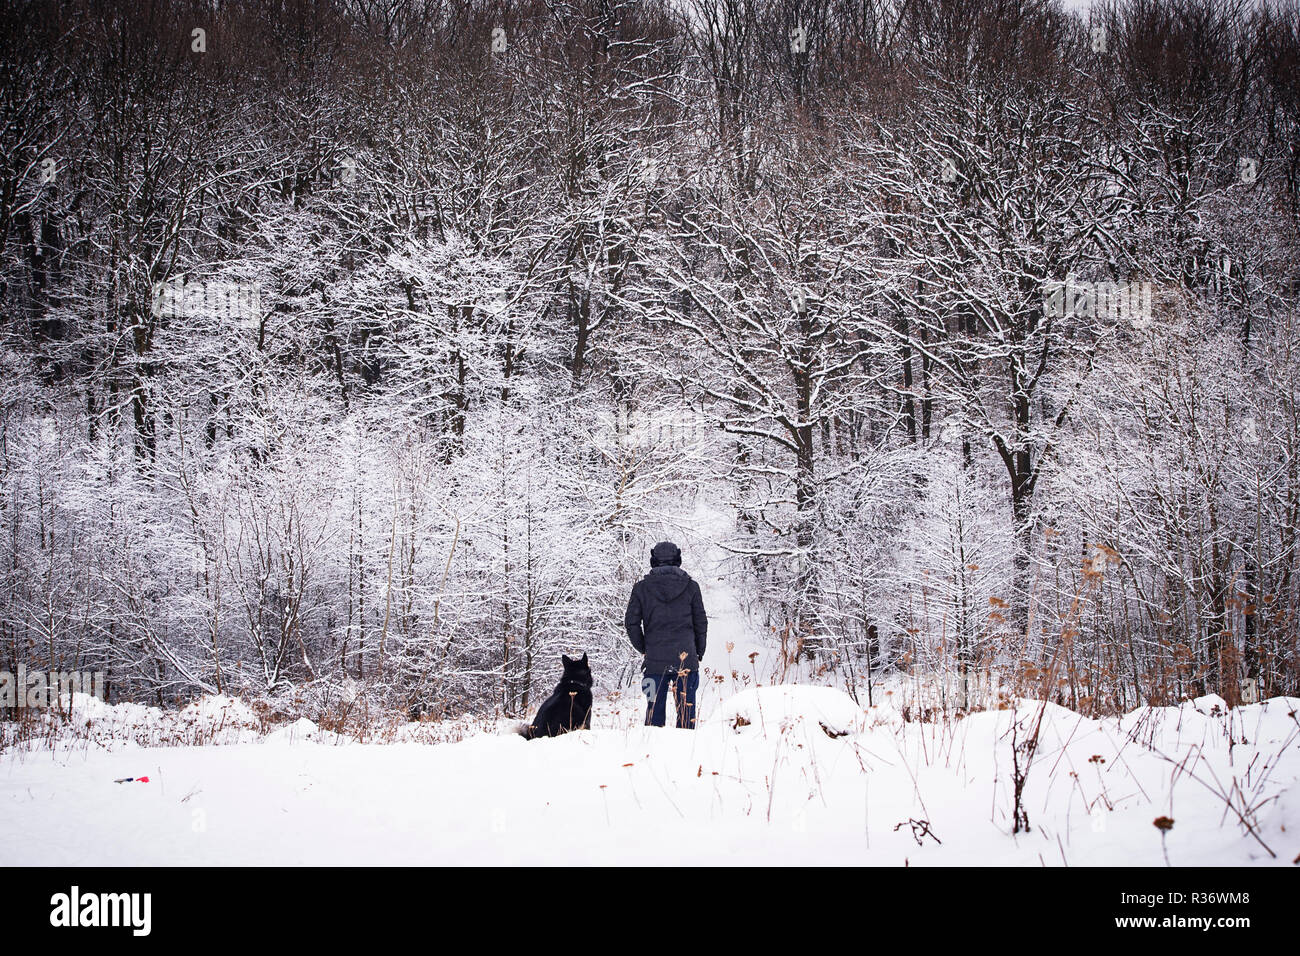 Man walking with his dog in winter forest - Stock Image